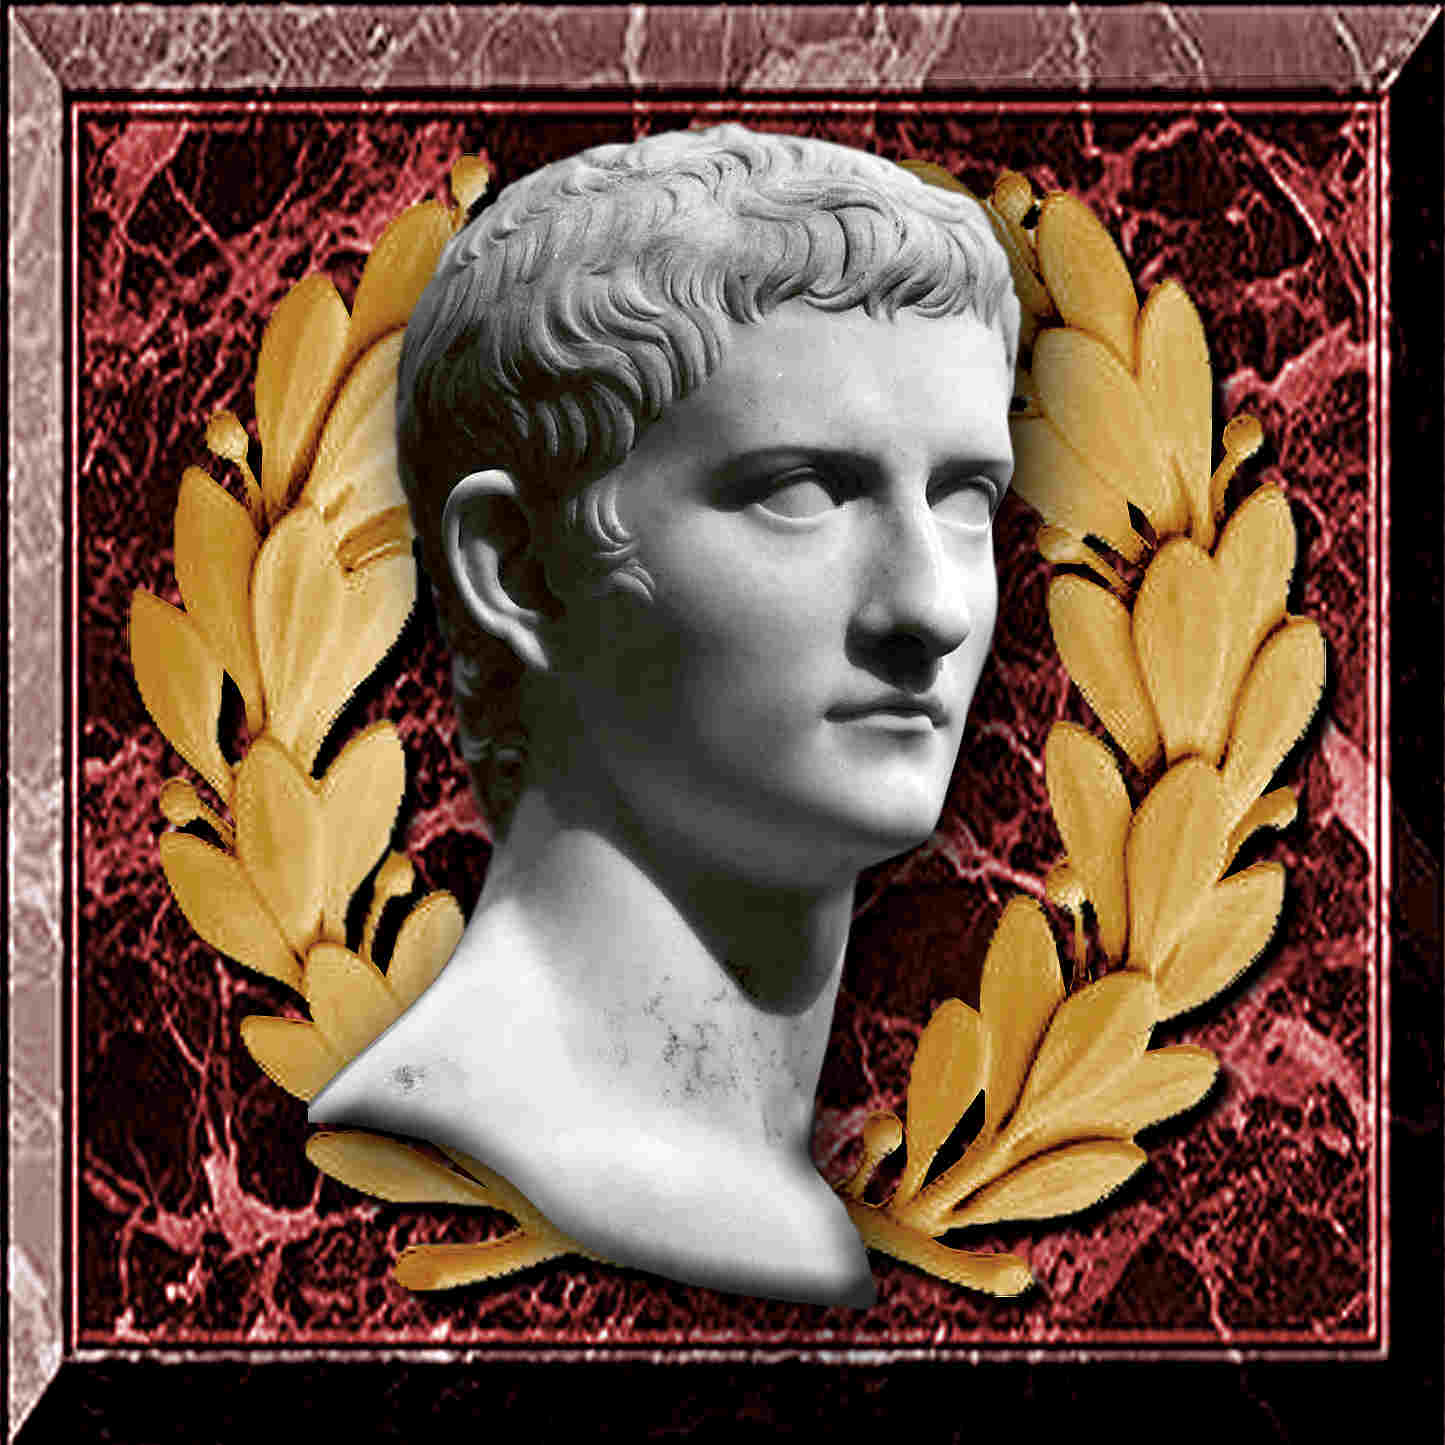 the life and times of emperor gaius caesar august germanicus Known as caligula 'little boots', gaius caesar augustus germanicus was born august 31, ad 12, died ad 41, and ruled as emperor ad 37-41 caligula was the son of augustus' adopted grandson, the very popular germanicus, and his wife, agrippina the elder who was augustus' granddaughter and a paragon of womanly virtue.